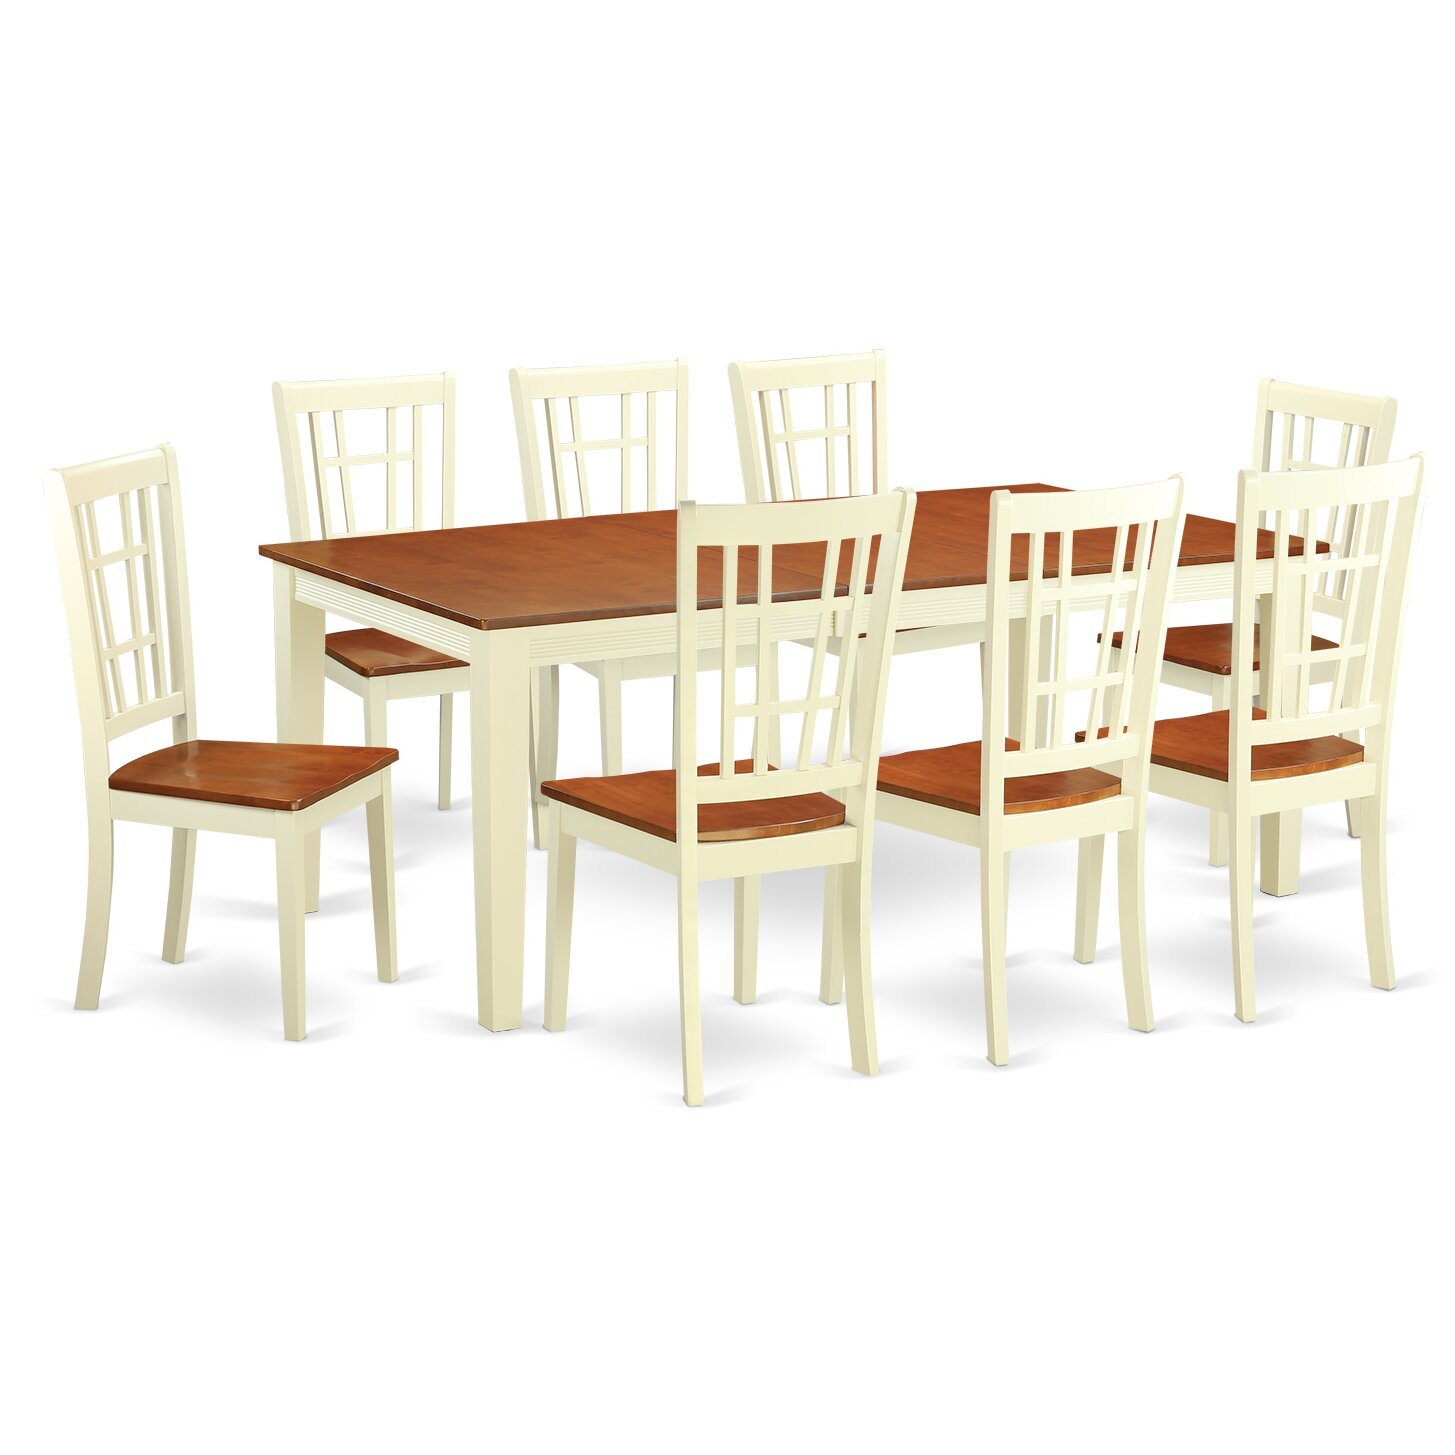 East west quincy 9 piece dining set wayfair for Kitchen dining room furniture